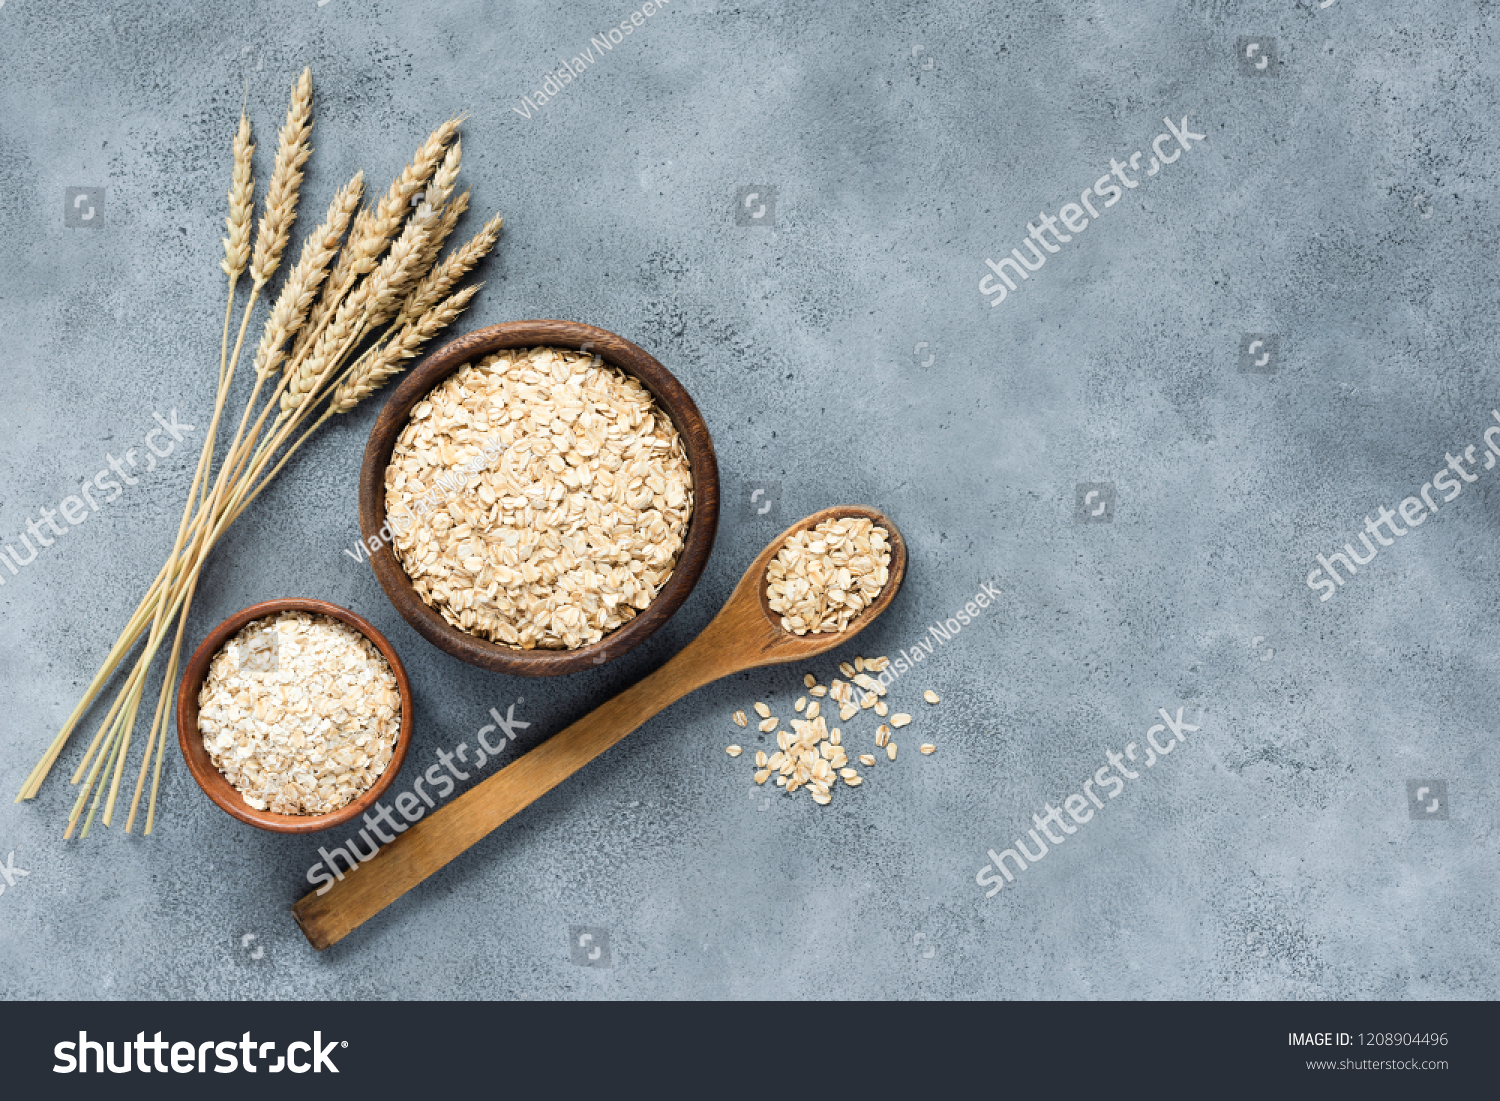 Oats, rolled oats and oat flakes in wooden bowl, top view. Concept of healthy eating, healthy lifestyle, dieting and vegetarian food #1208904496